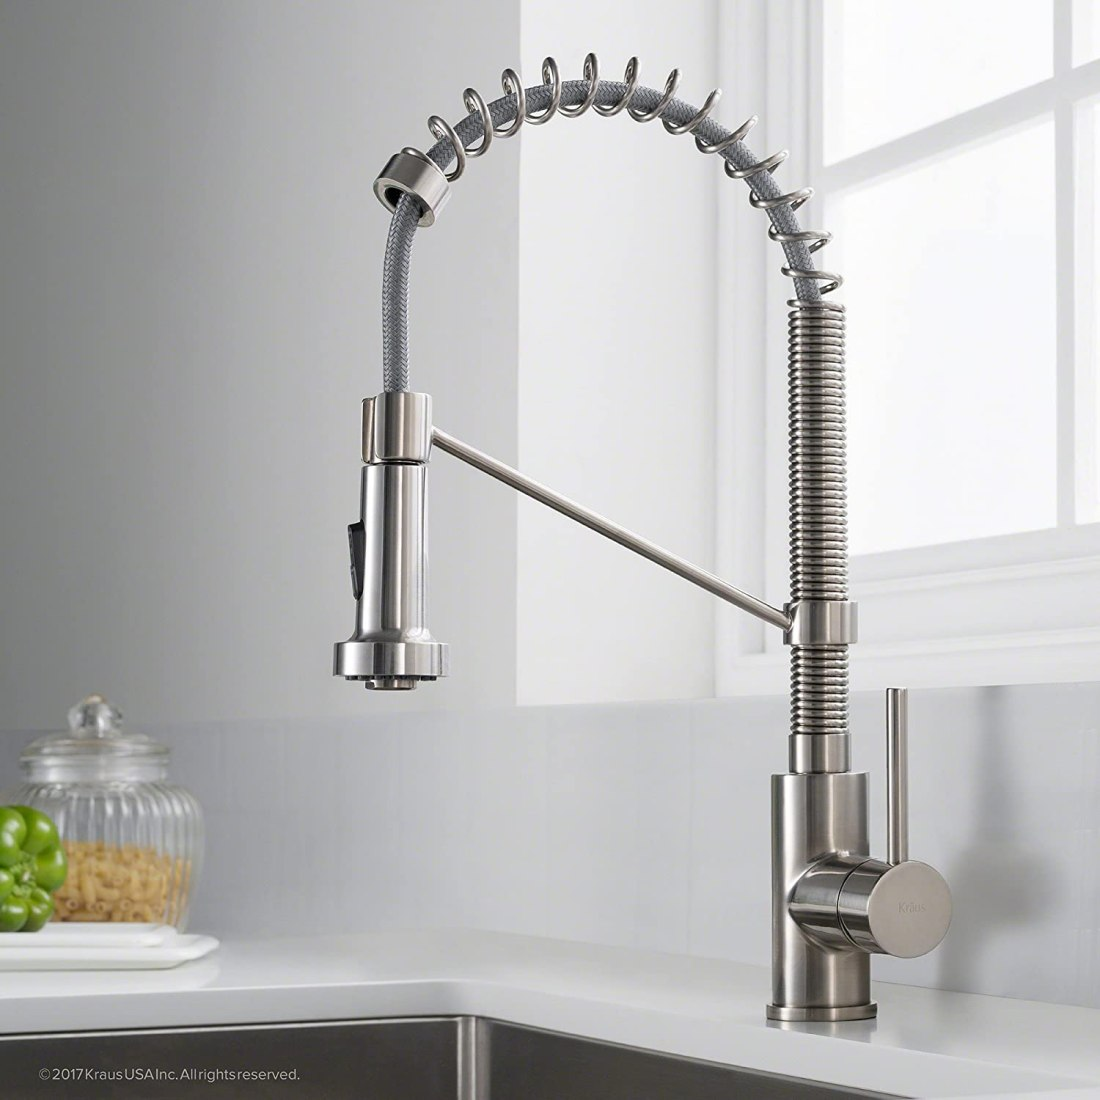 5 Best Pull Down Kitchen Faucet Reviews 2019 Top Rated